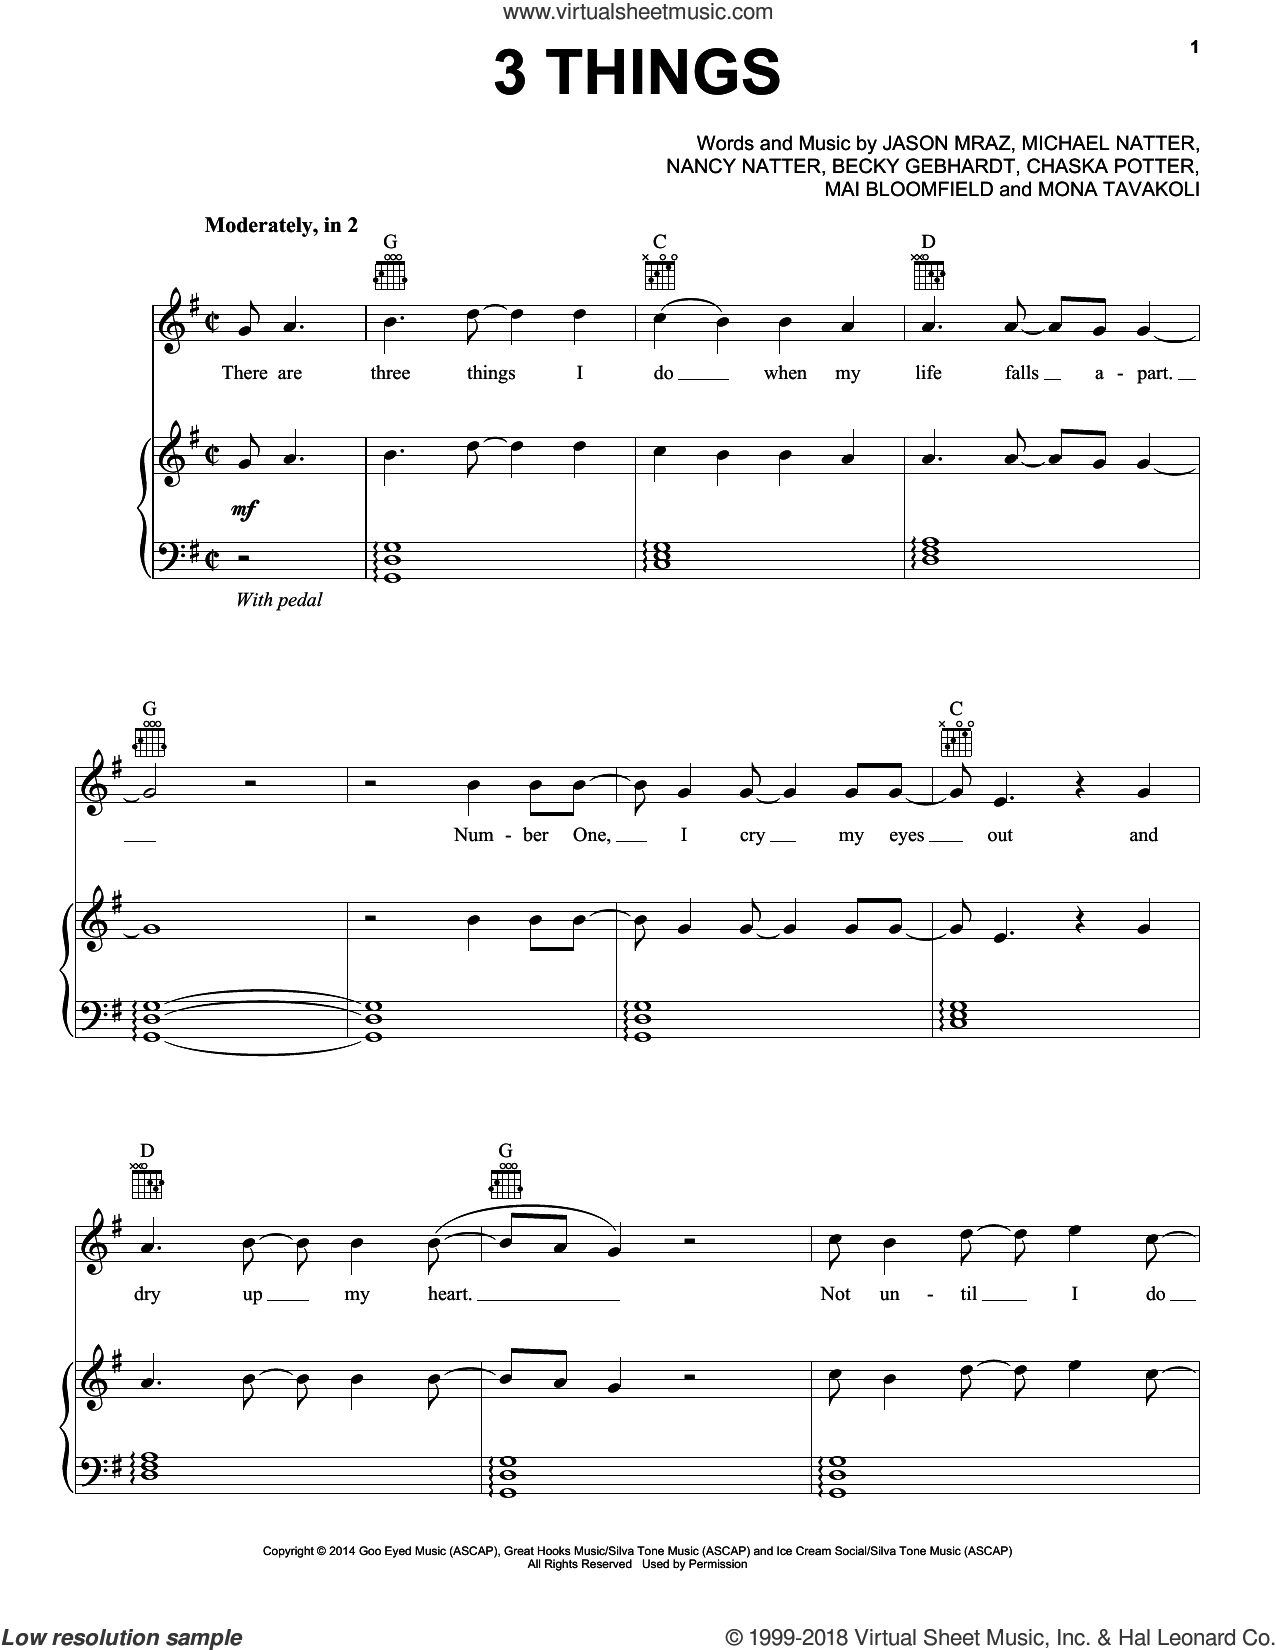 3 Things sheet music for voice, piano or guitar by Nancy Natter, Jason Mraz, Michael Natter and Mona Tavakoli. Score Image Preview.